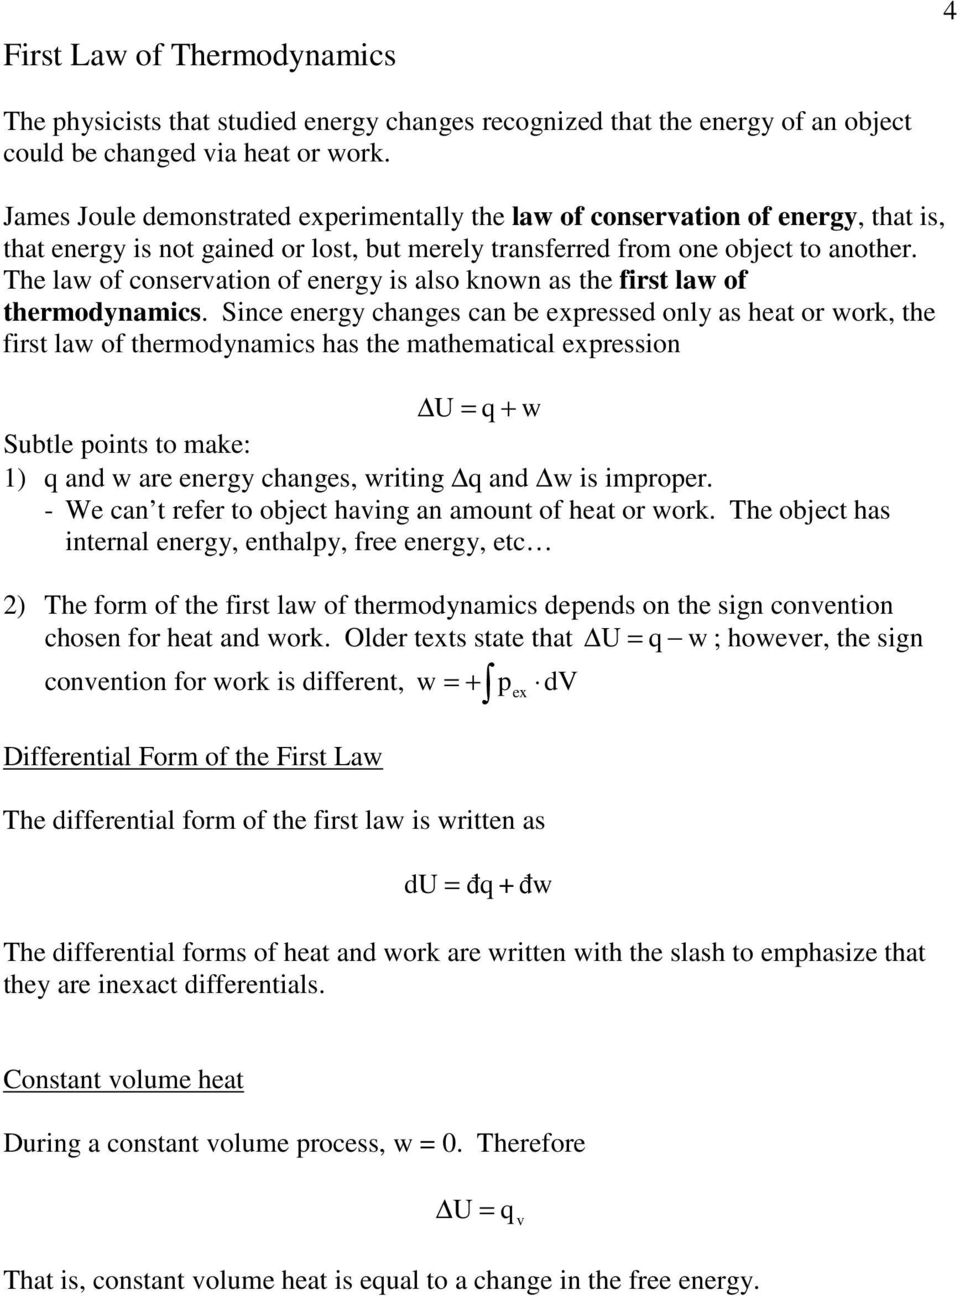 he law of conservation of energy is also known as the first law of thermodynamics.